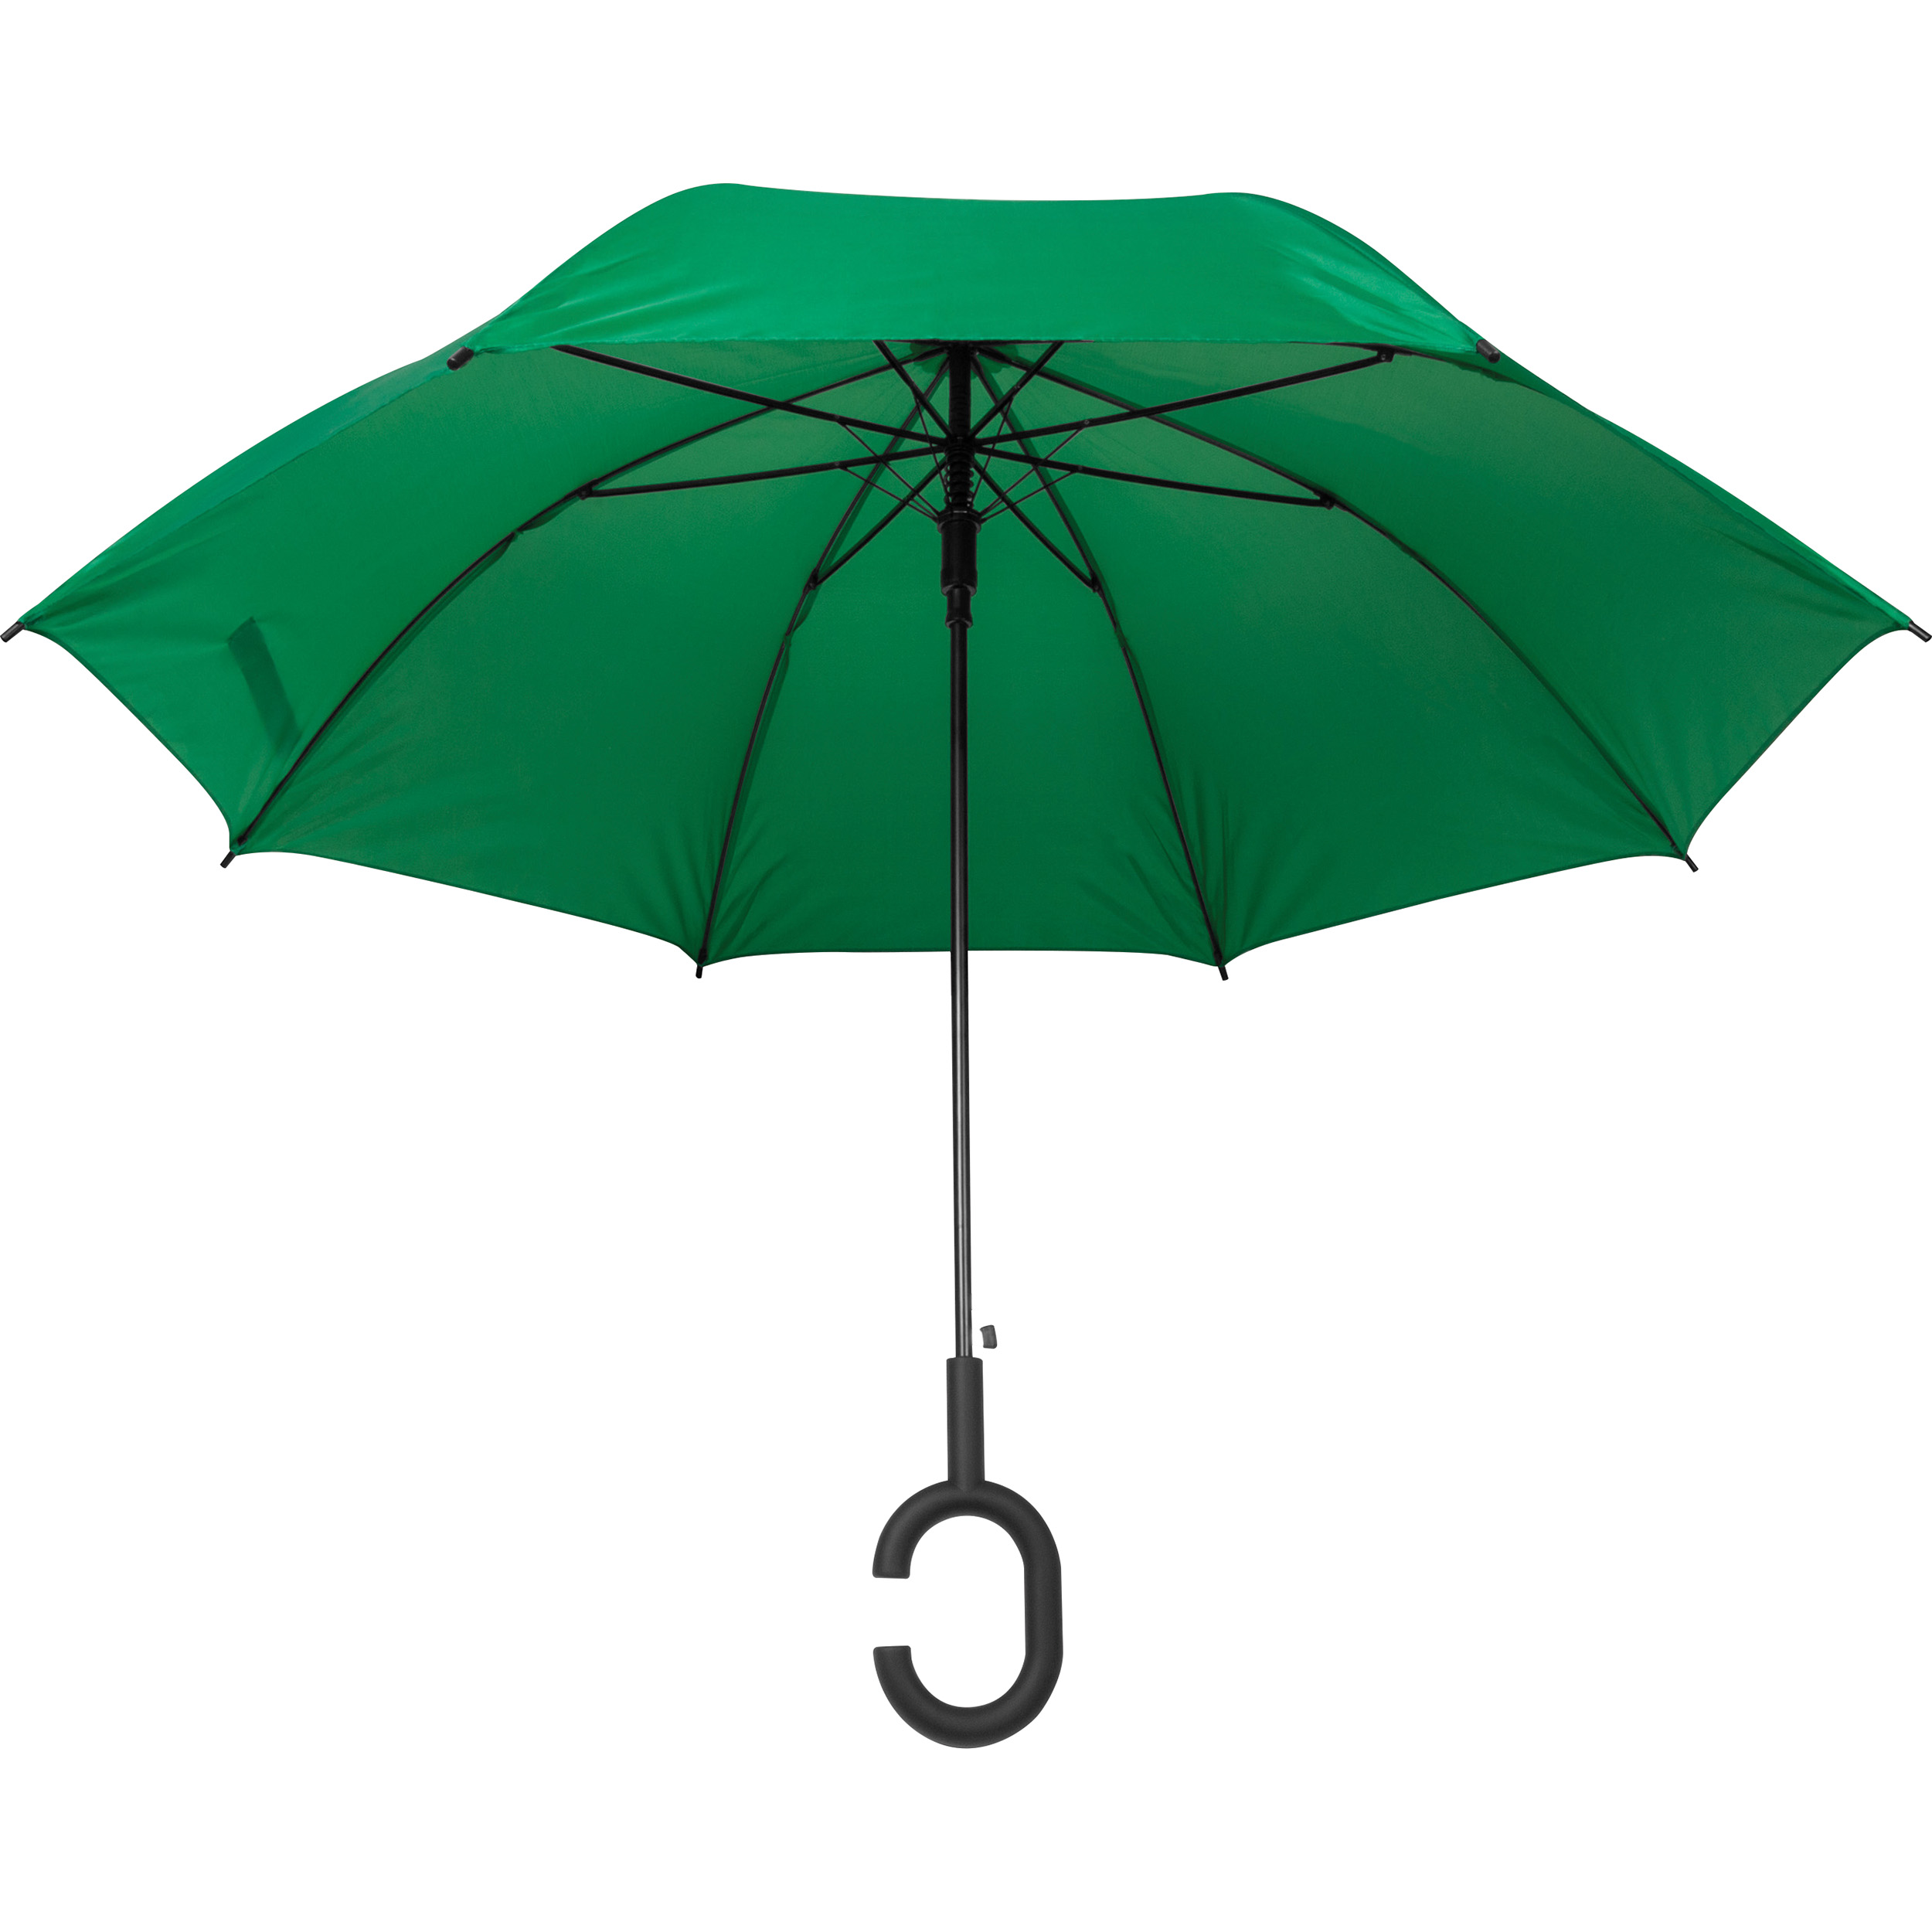 Hands-free umbrella